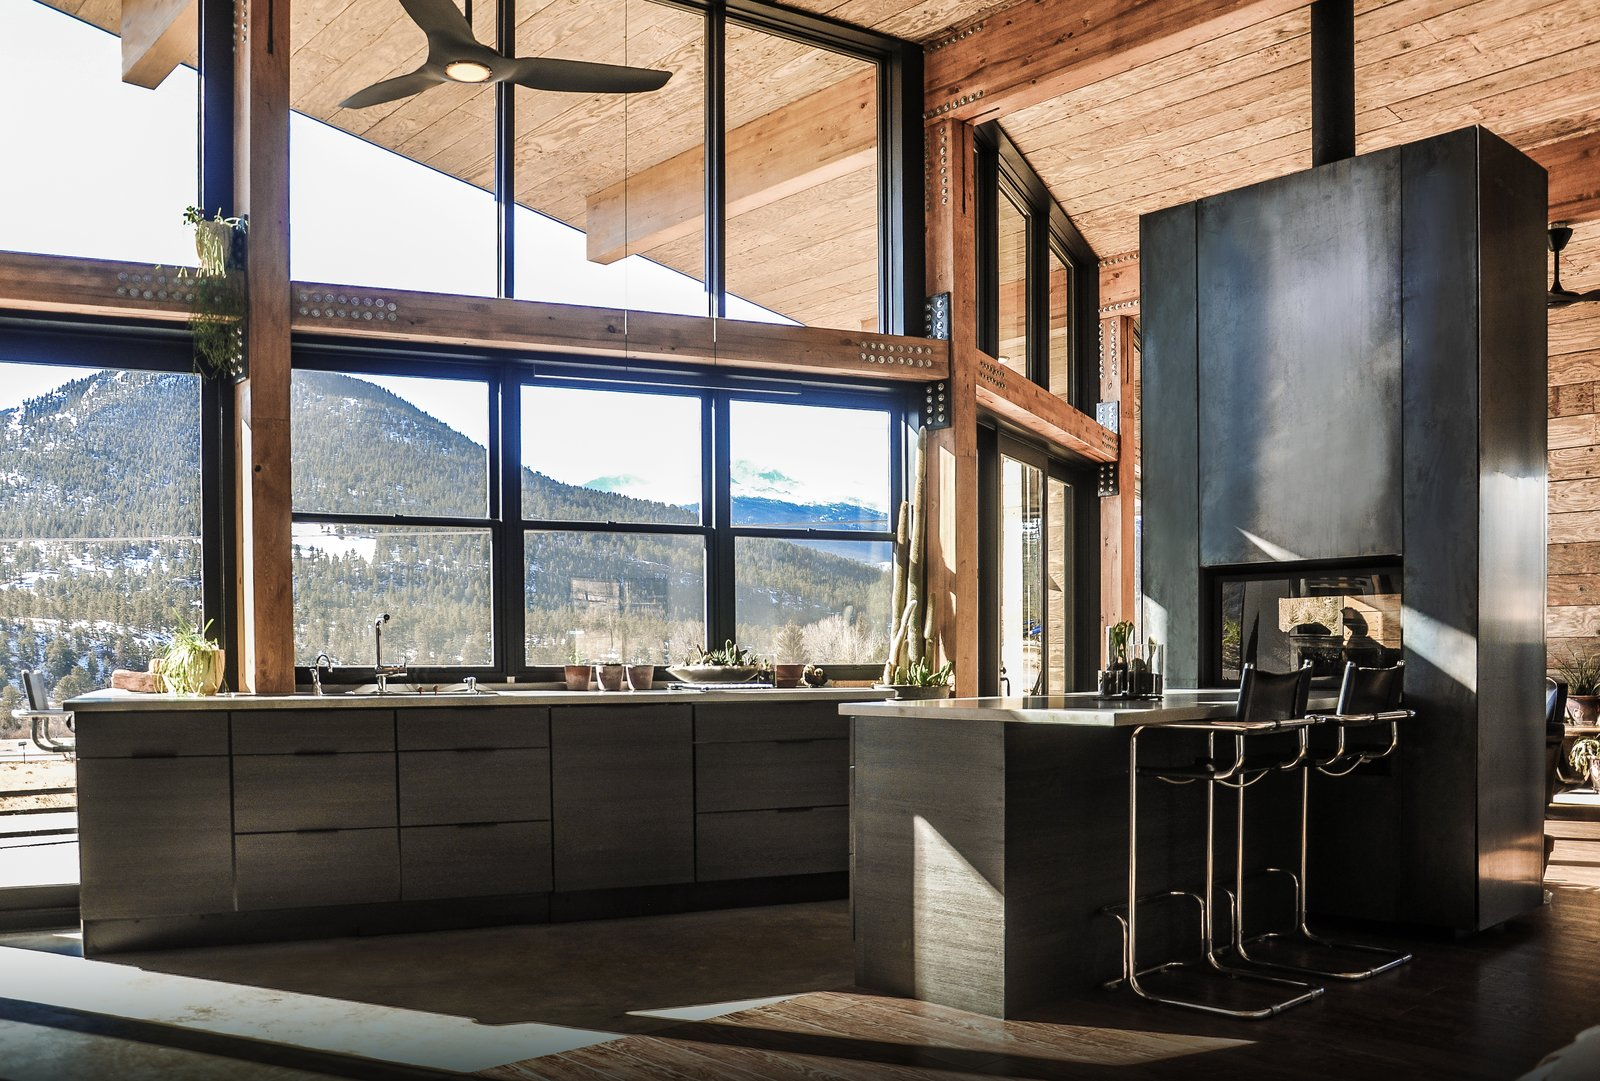 Kitchen, Refrigerator, Microwave, Cooktops, Wood, Dishwasher, Ceiling, Metal, Dark Hardwood, Concrete, Concrete, Range, Wall Oven, Pendant, Concrete, Accent, and Drop In The warm industrial kitchen celebrates views of Rocky Mountain National Park beyond. A see-through, steel fireplace becomes a glowing beacon that warms the kitchen and living room at the heart of the home.   Best Kitchen Concrete Wood Dark Hardwood Dishwasher Microwave Range Accent Wall Oven Pendant Photos from Estes Park Residence